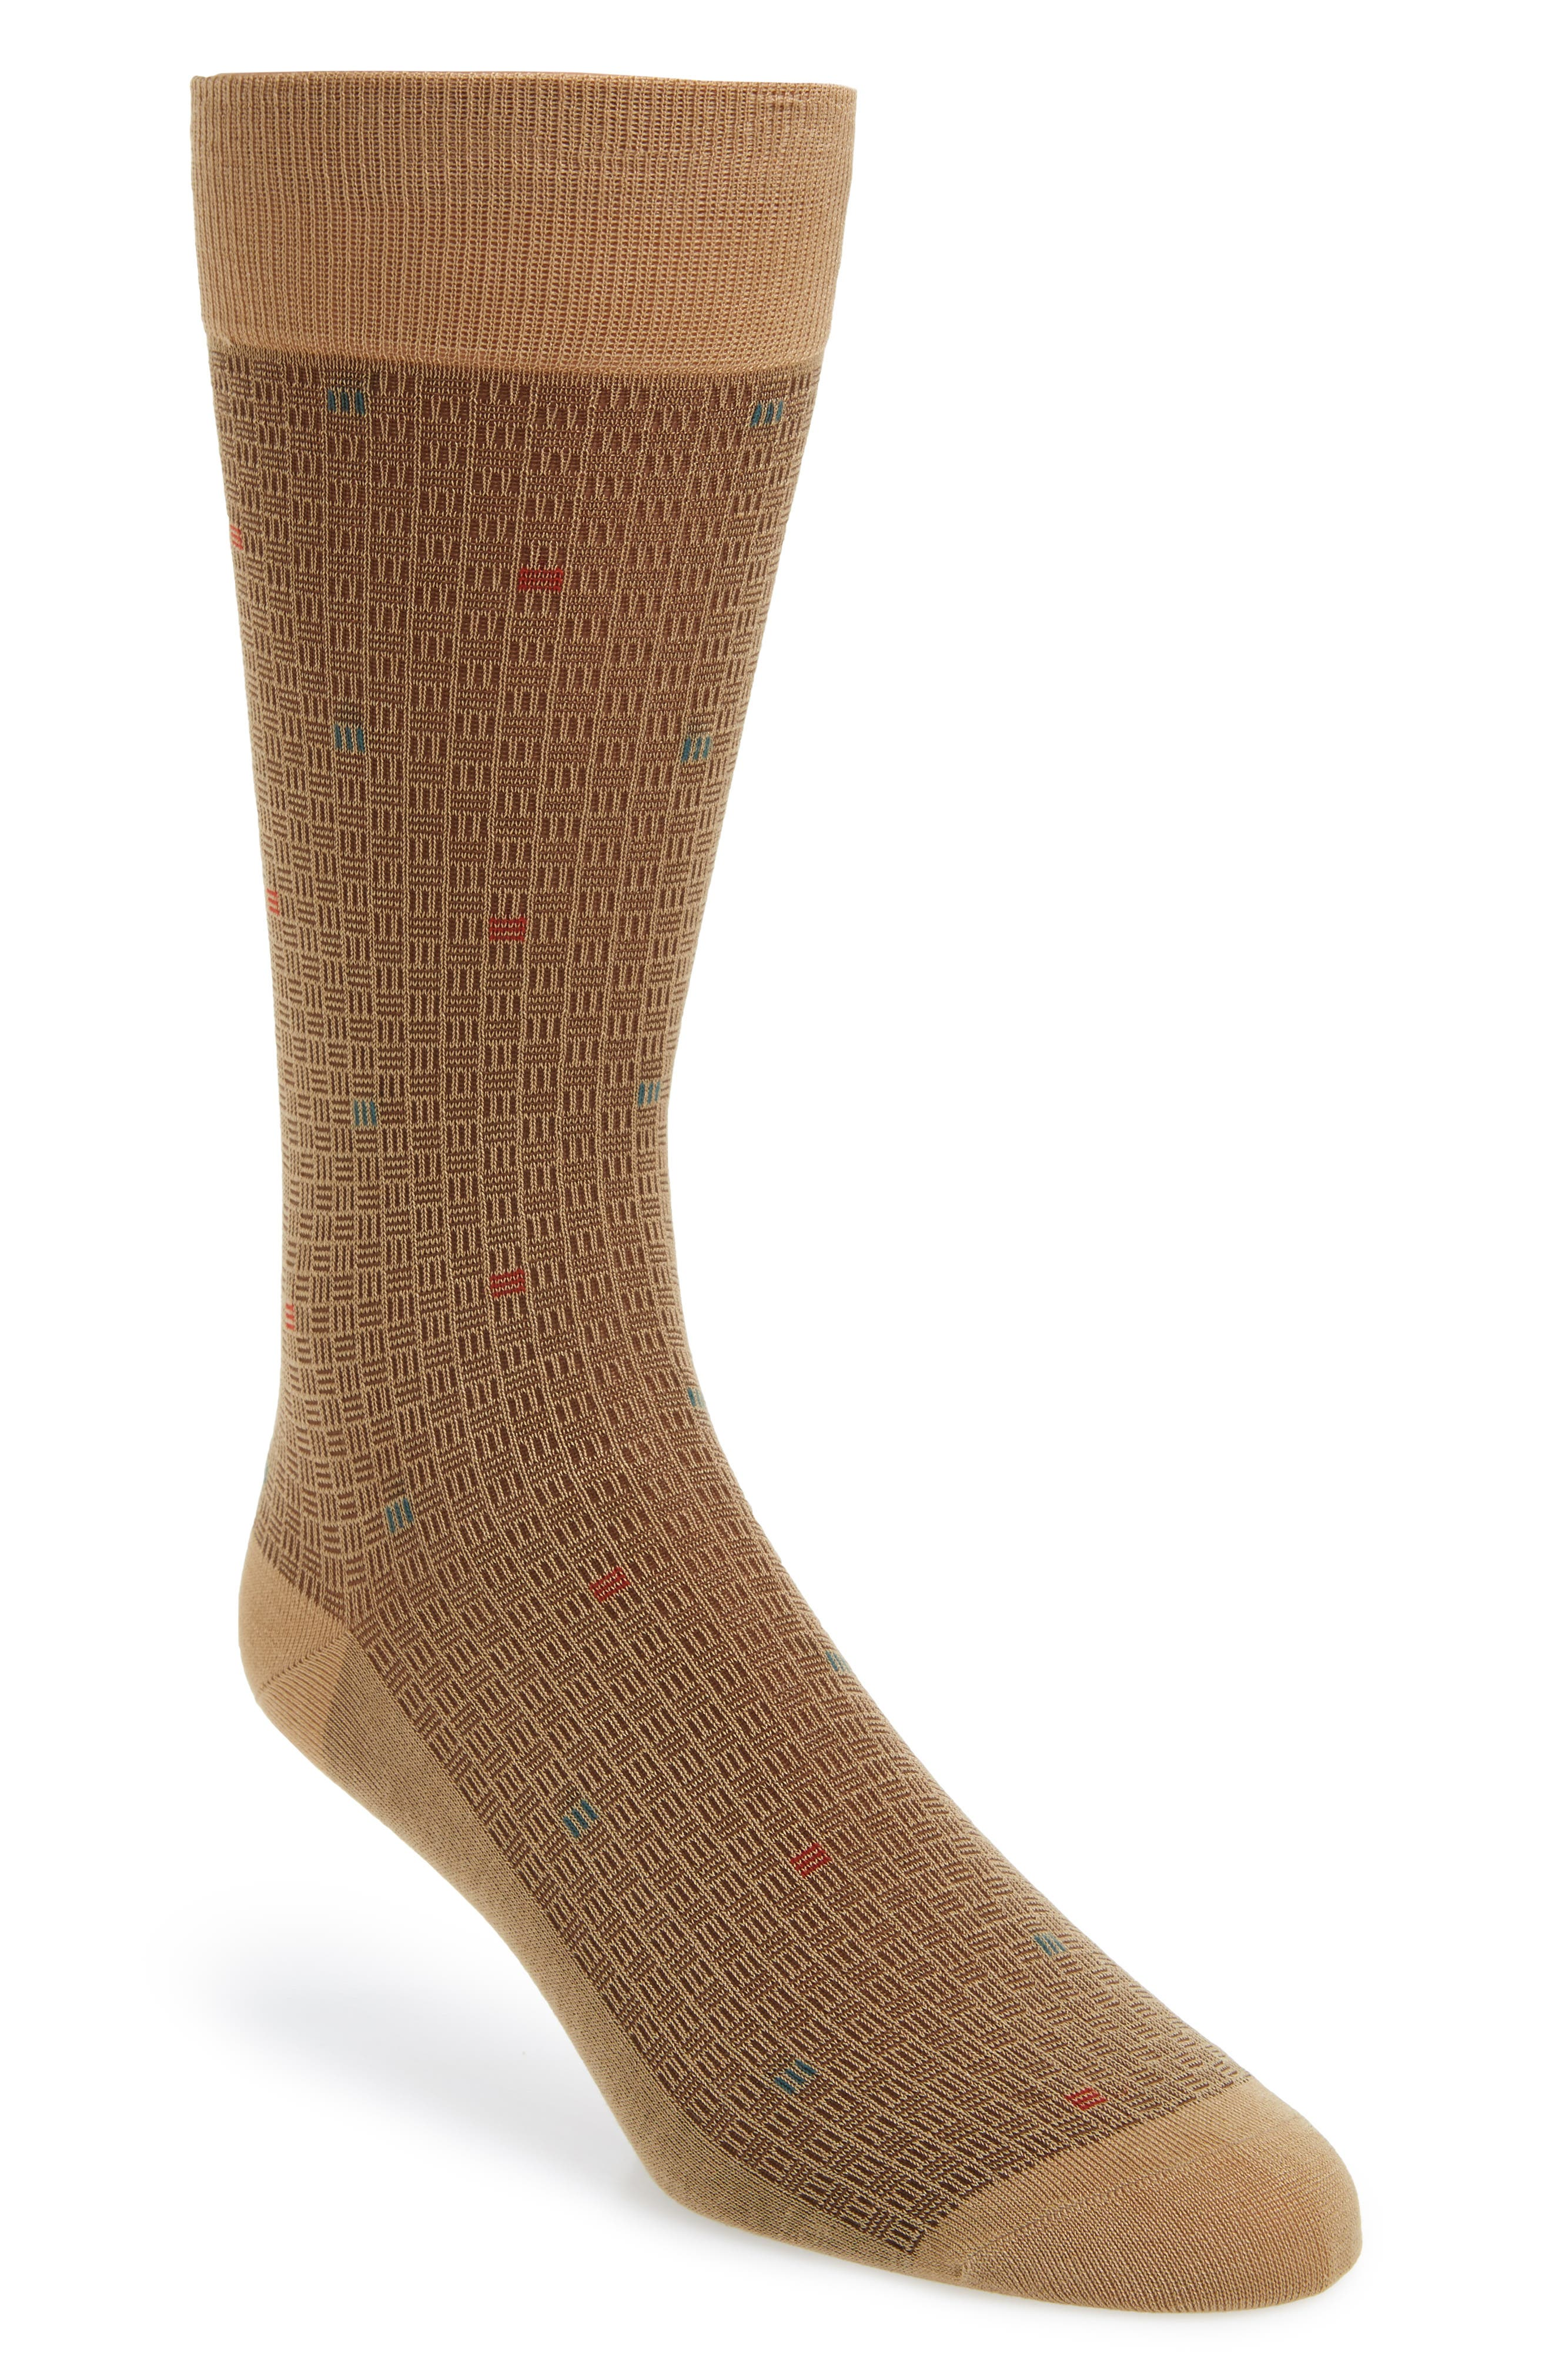 Pantherella Spiral Basket Weave Socks